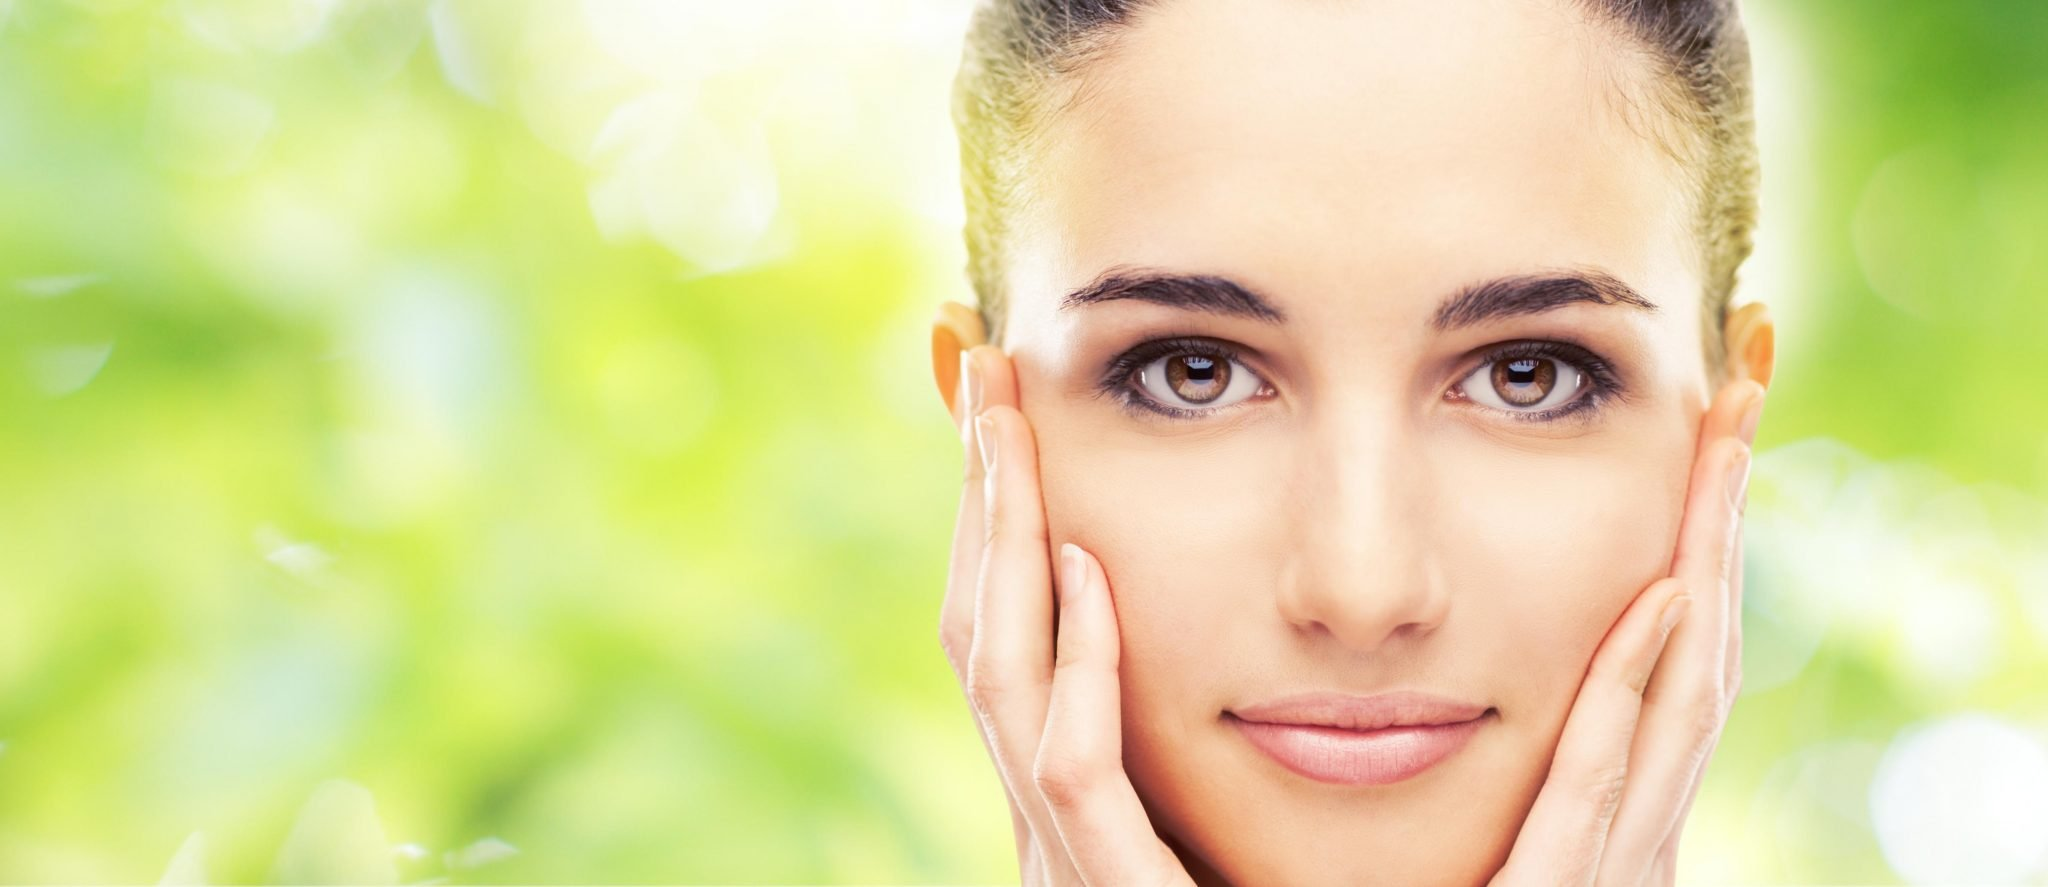 Acne Treatment From The Inside Out